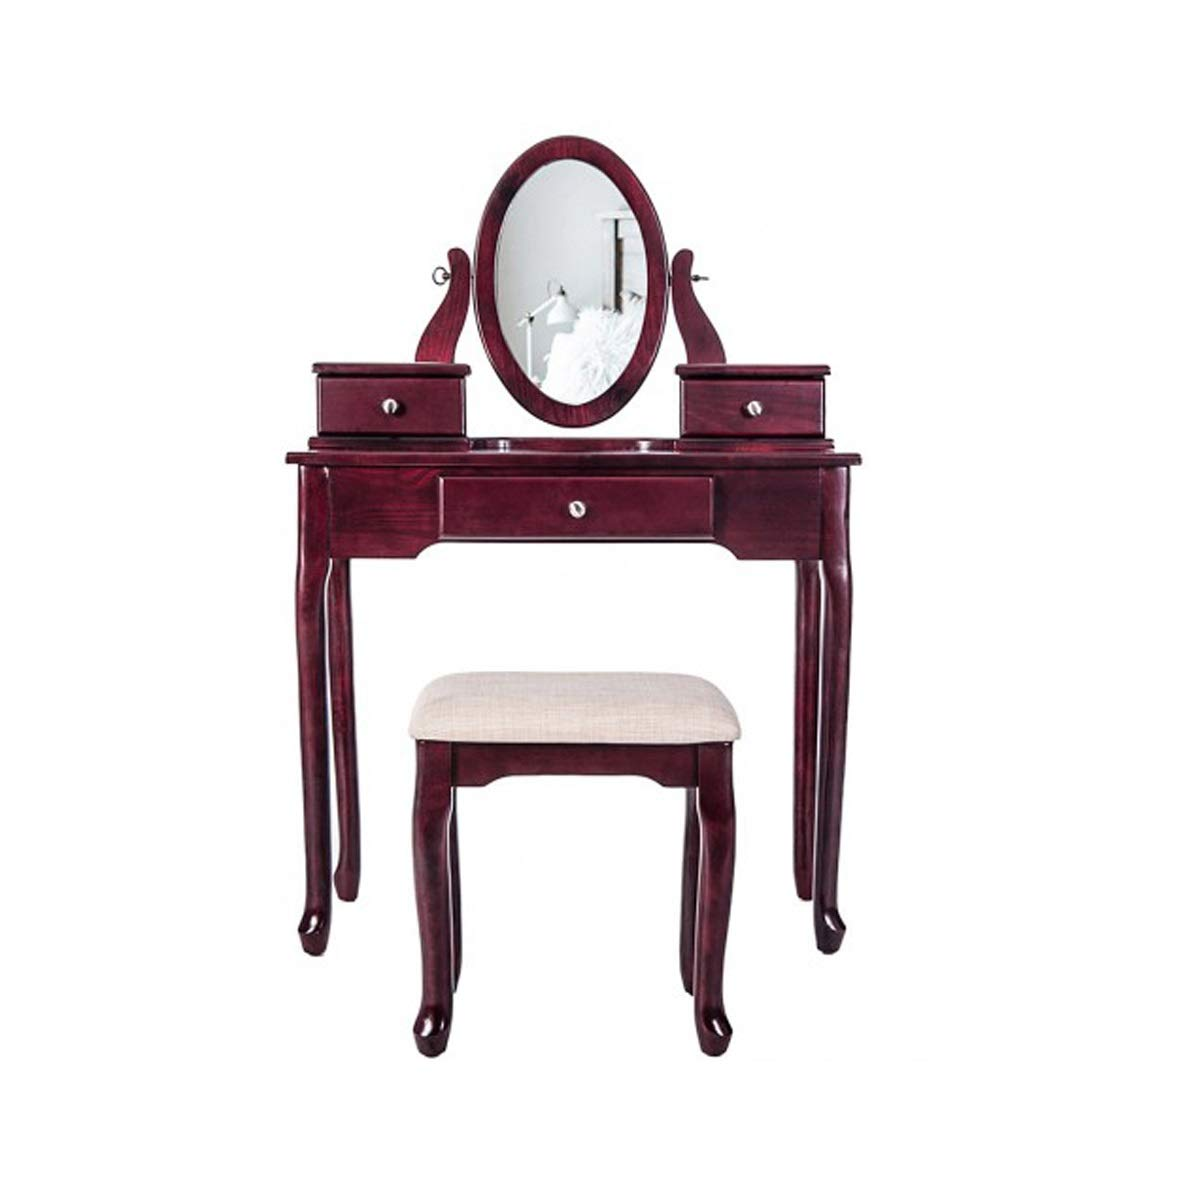 TONGBOSHI Dressing Table with Clamshell Mirror Dressing Table and Cushion Bench - 2 PC Contemporary Mirror Dressers with Table Top and Detachable Drawers, Brown (Color : Brown)